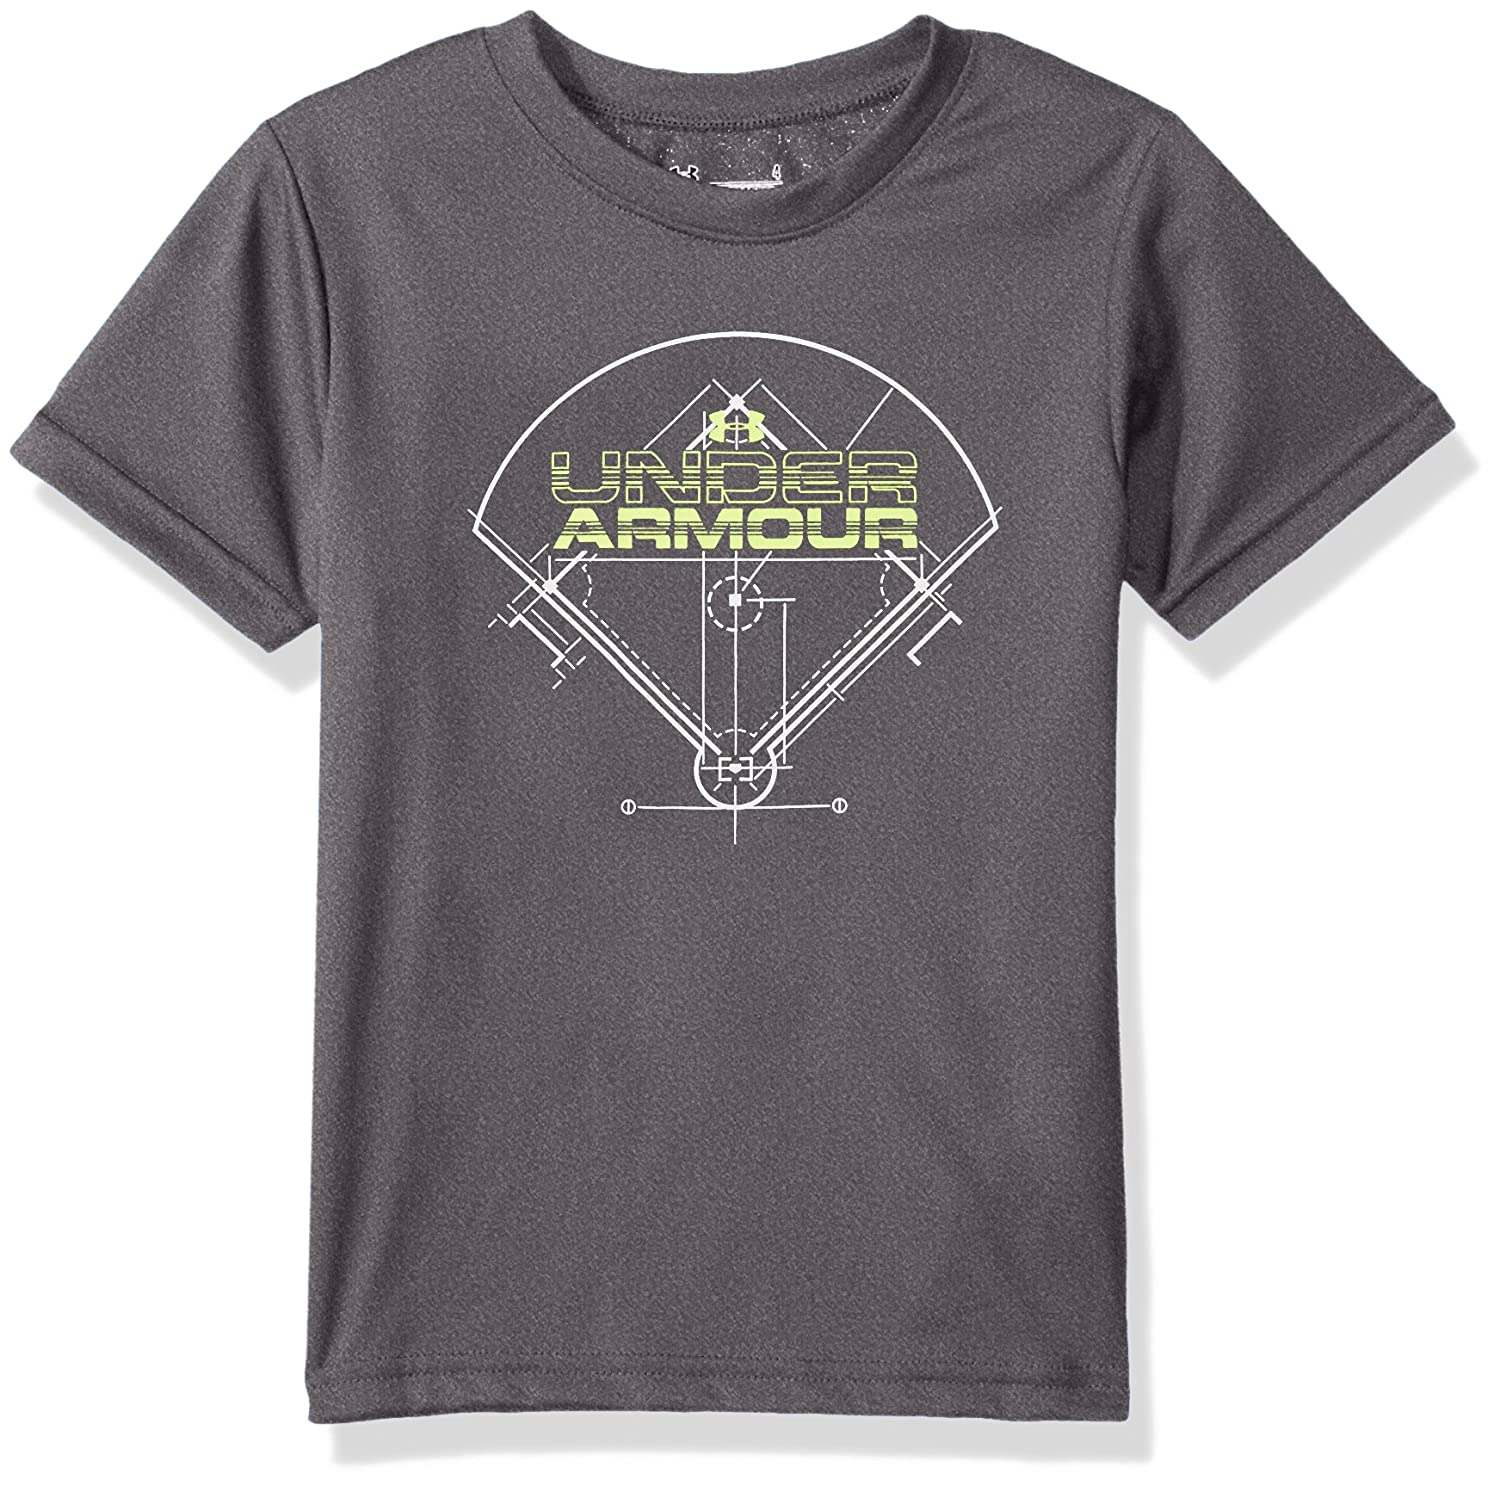 Under Armour SHIRT ボーイズ 4 Carbon Gray B01N64JE3U